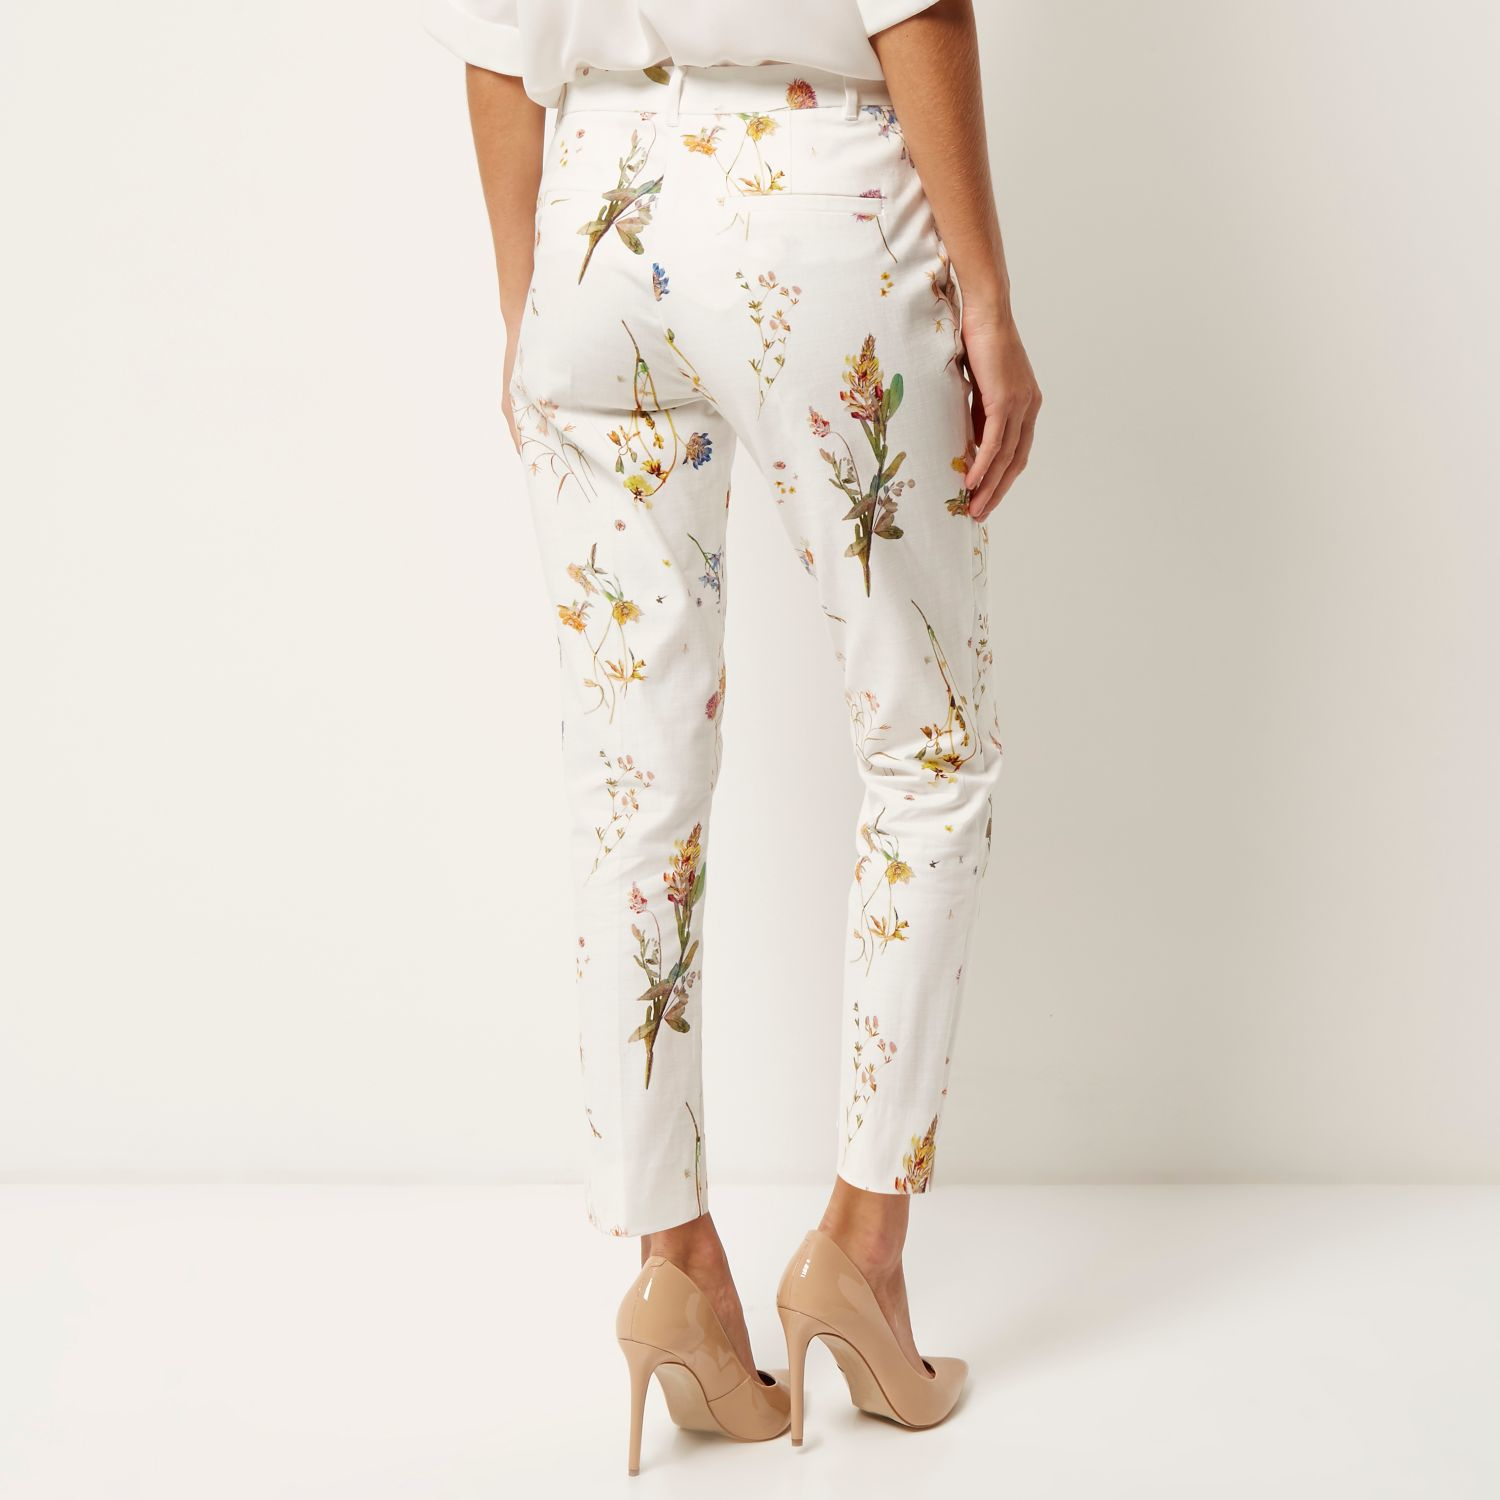 Lyst River Island White Floral Print Slim Pants In White